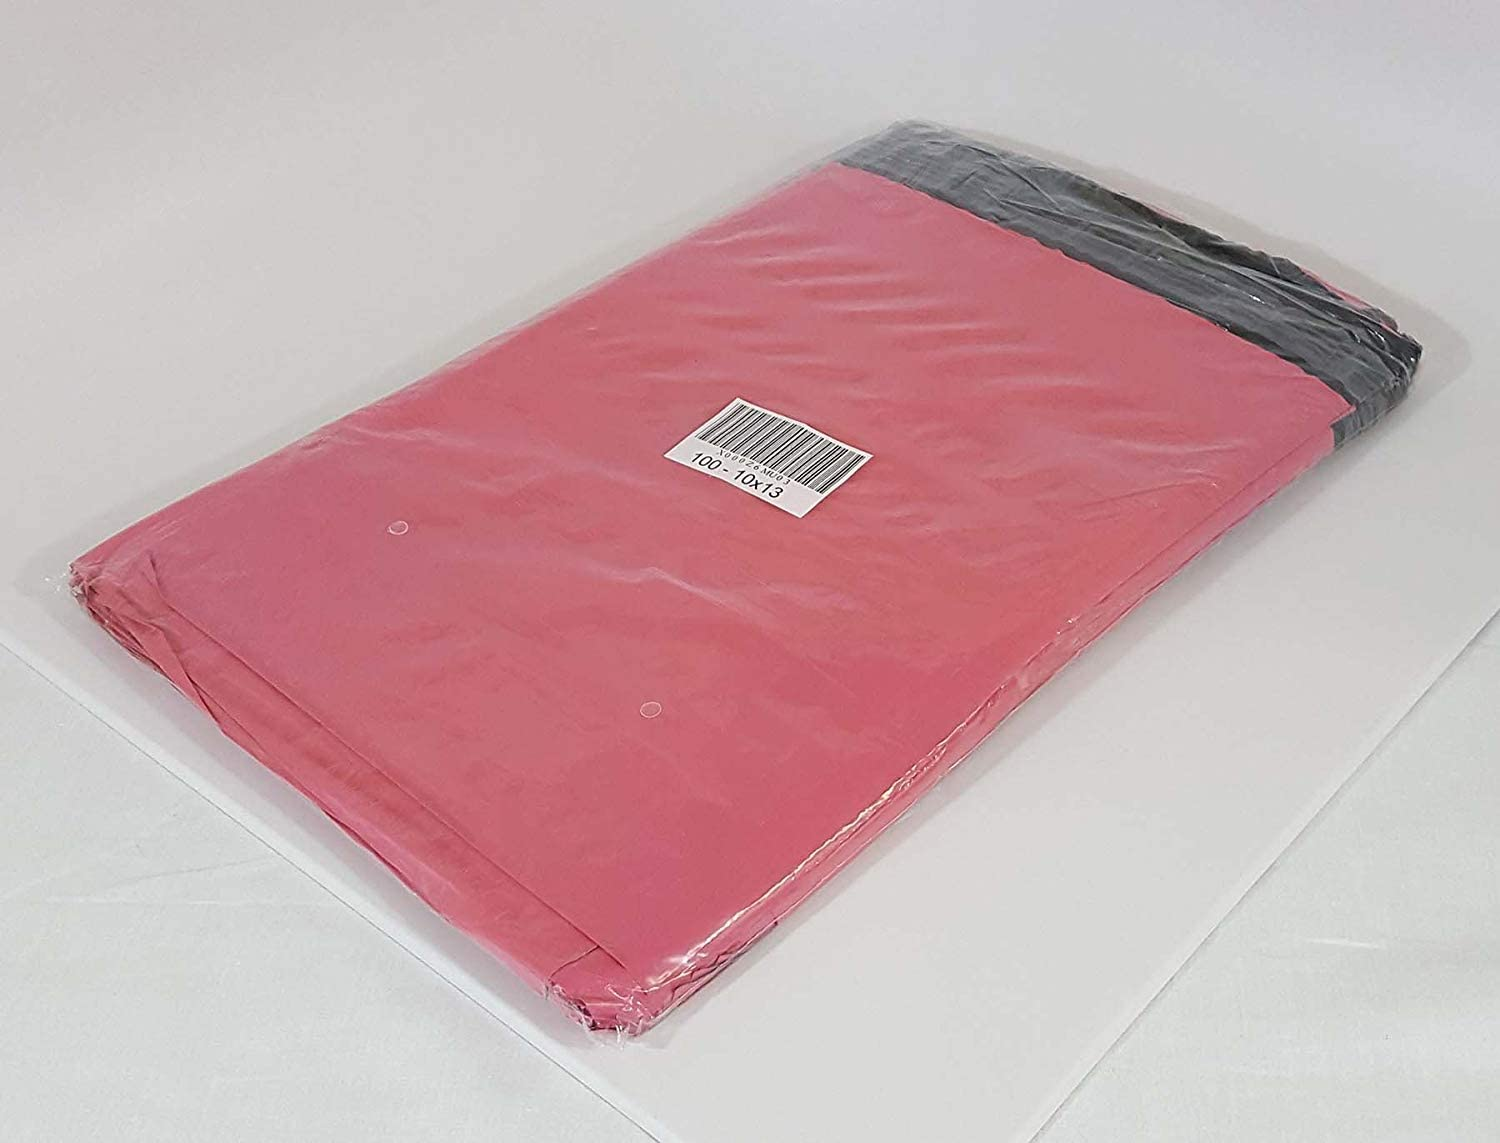 Imbaprice Poly Mailers Shipping Envelopes Bags 10/x 13/ 10 x 13 /inches 100 Bags Blue